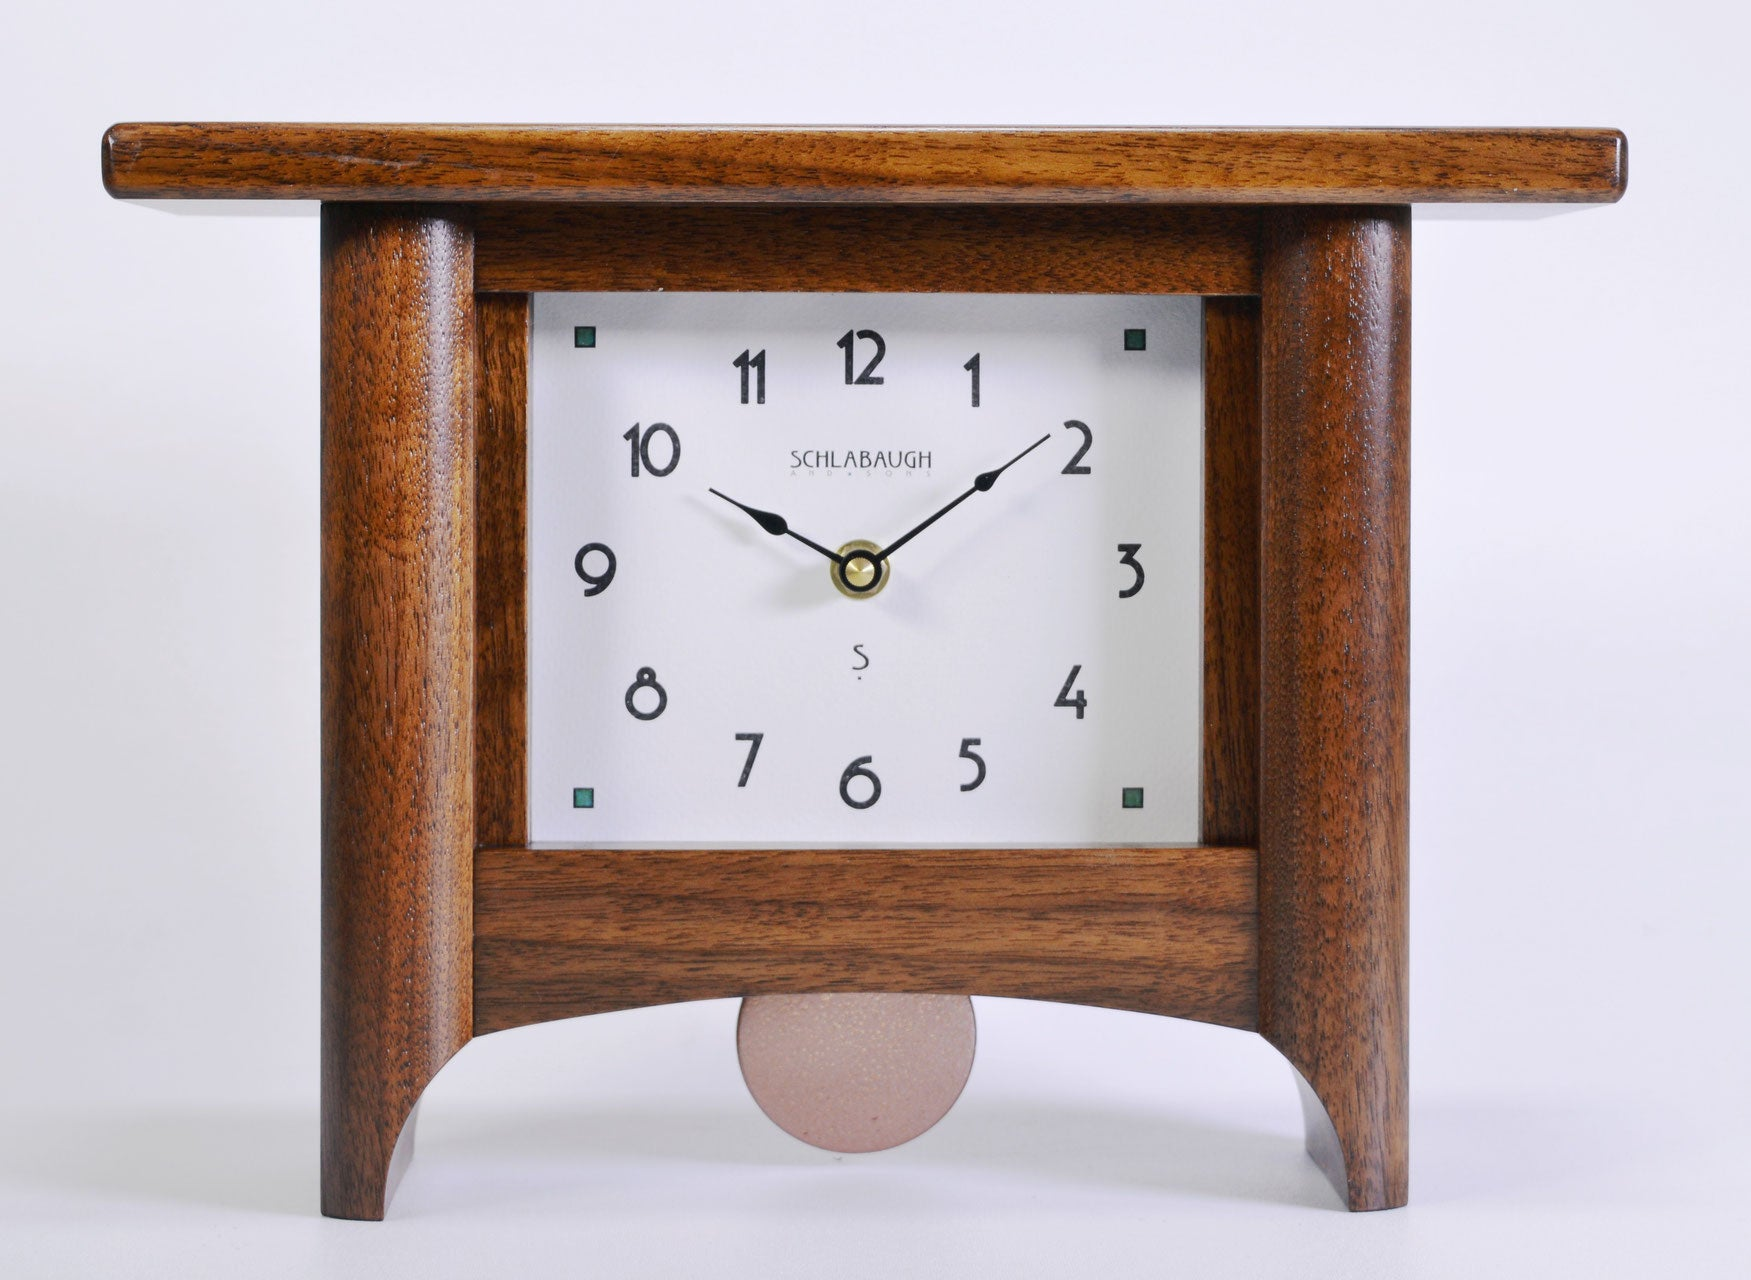 Loft Series Mantel Clock - Eclipse Gallery